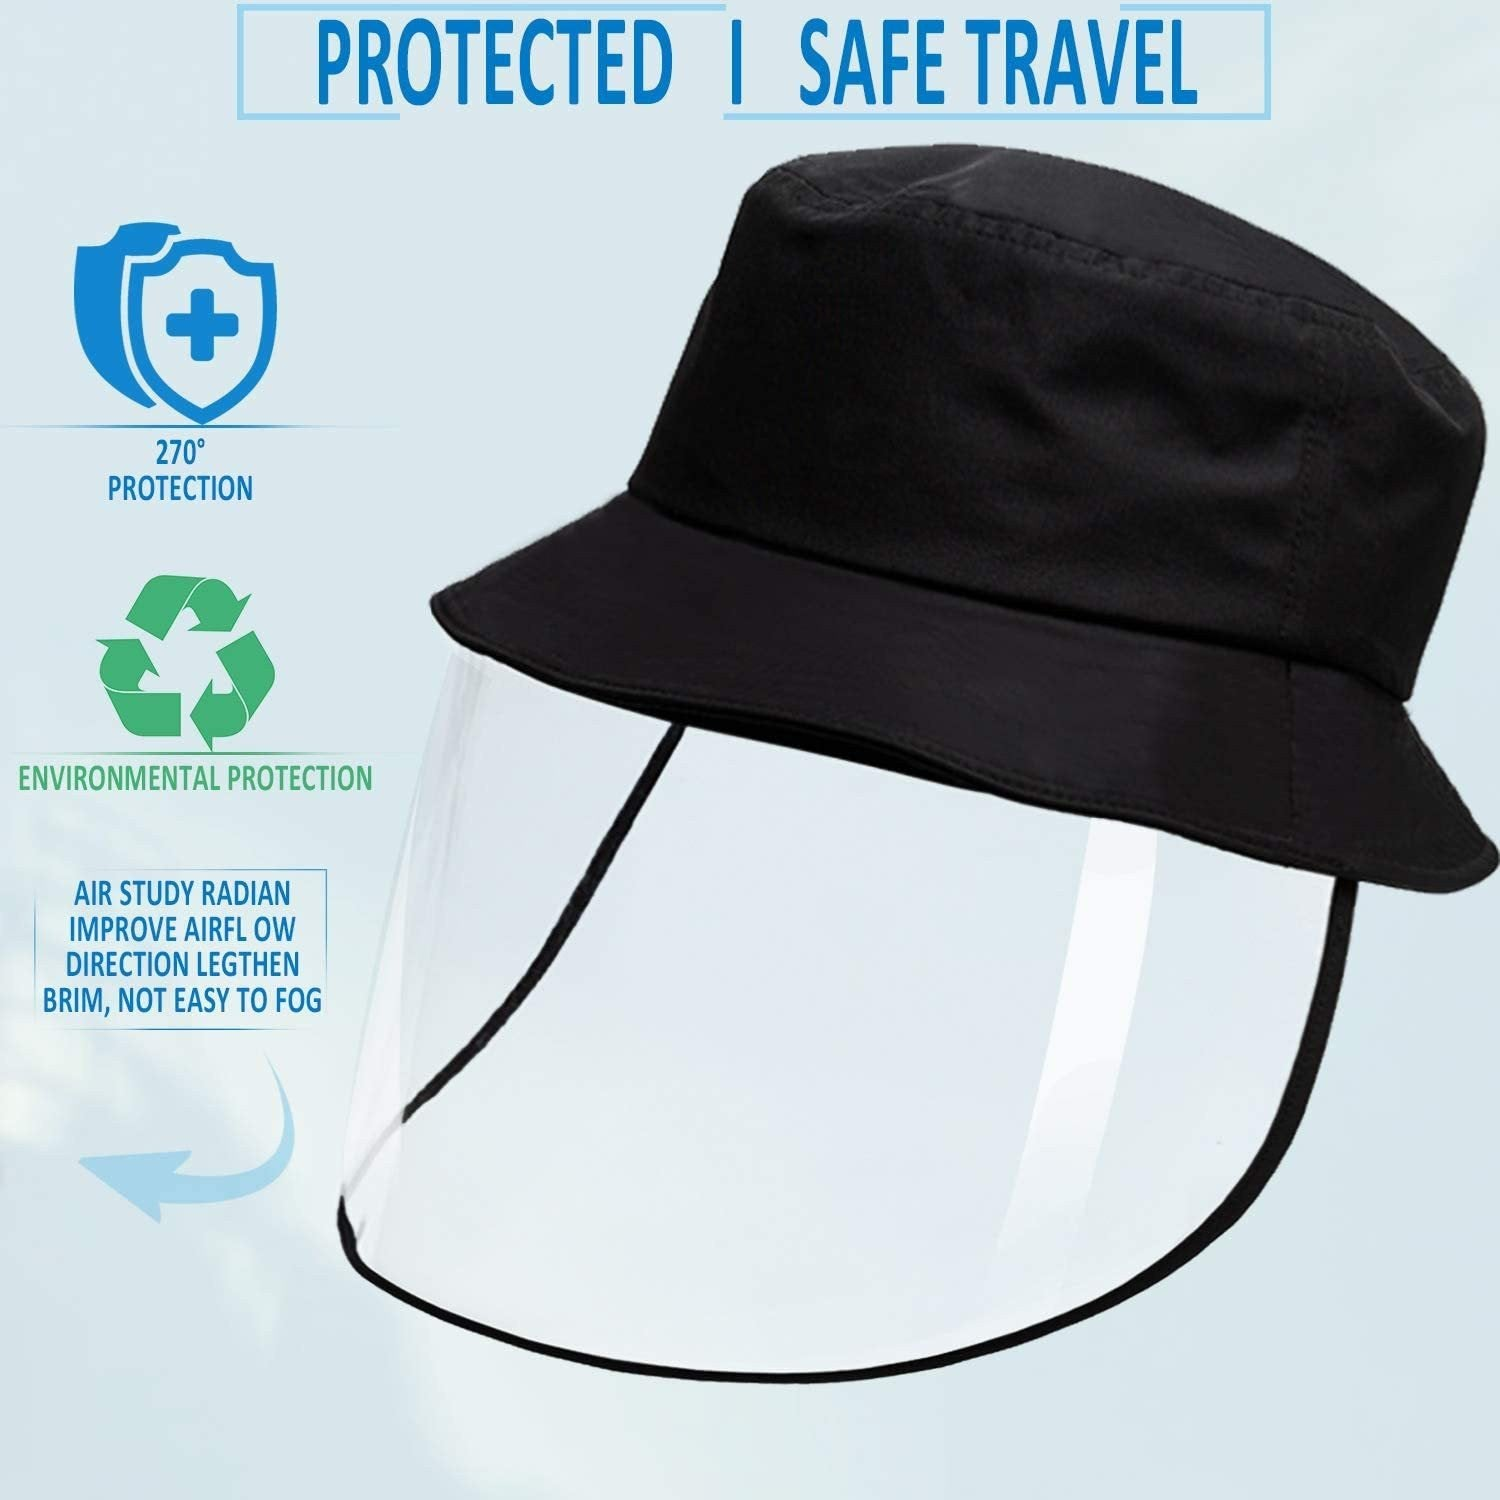 HD Transparent Shield Hat - Reusable : Wind-proof, dust-proof